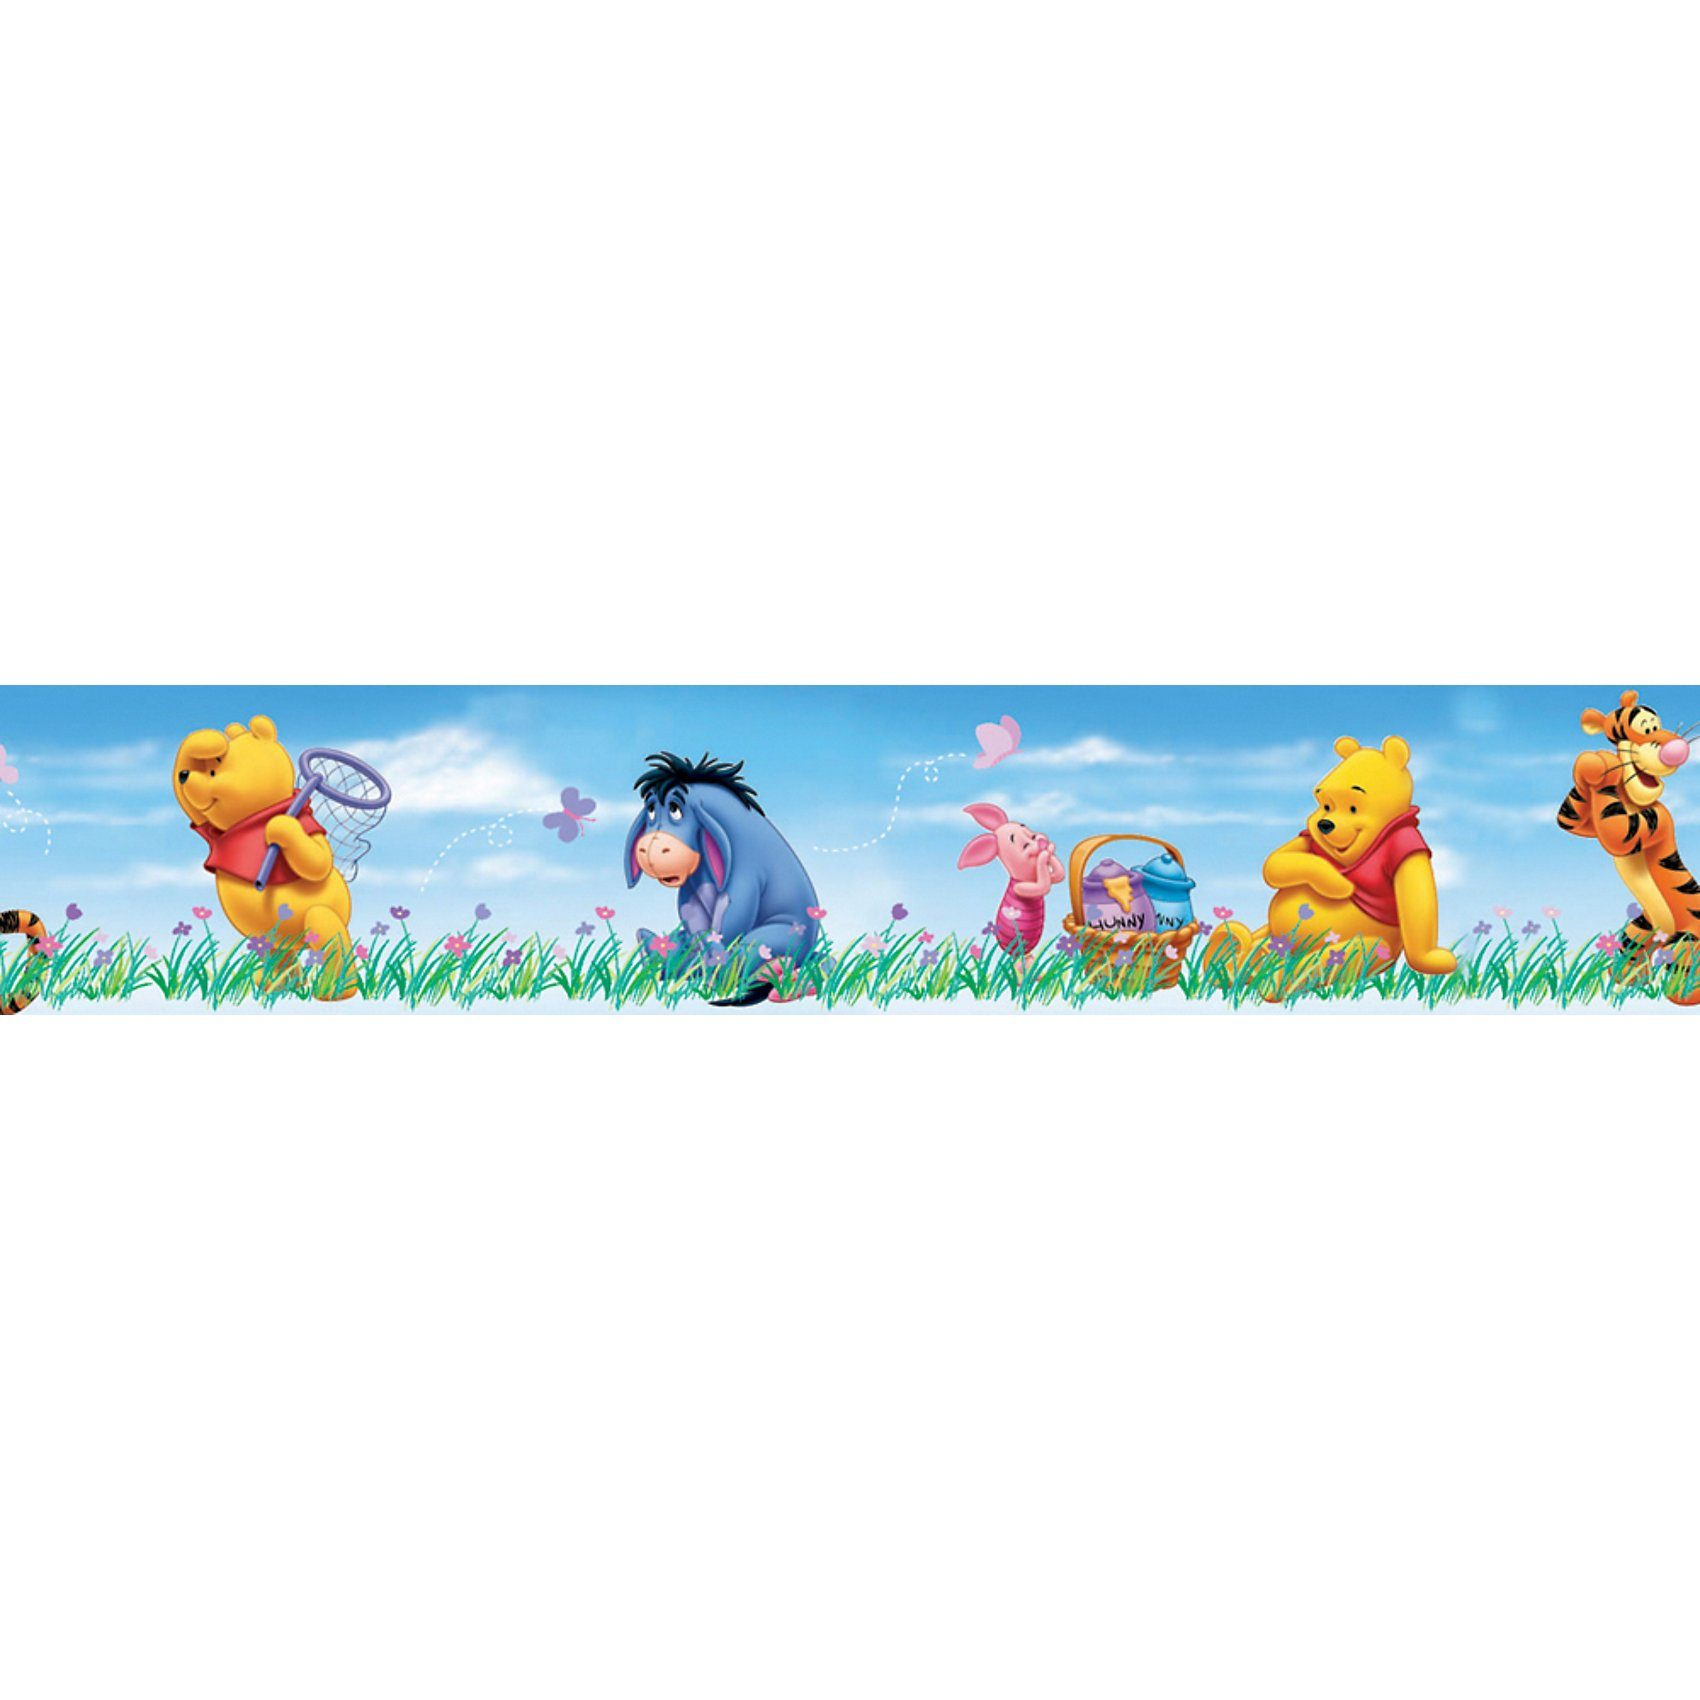 Decofun Bordüre Winnie the Pooh Beautiful Day